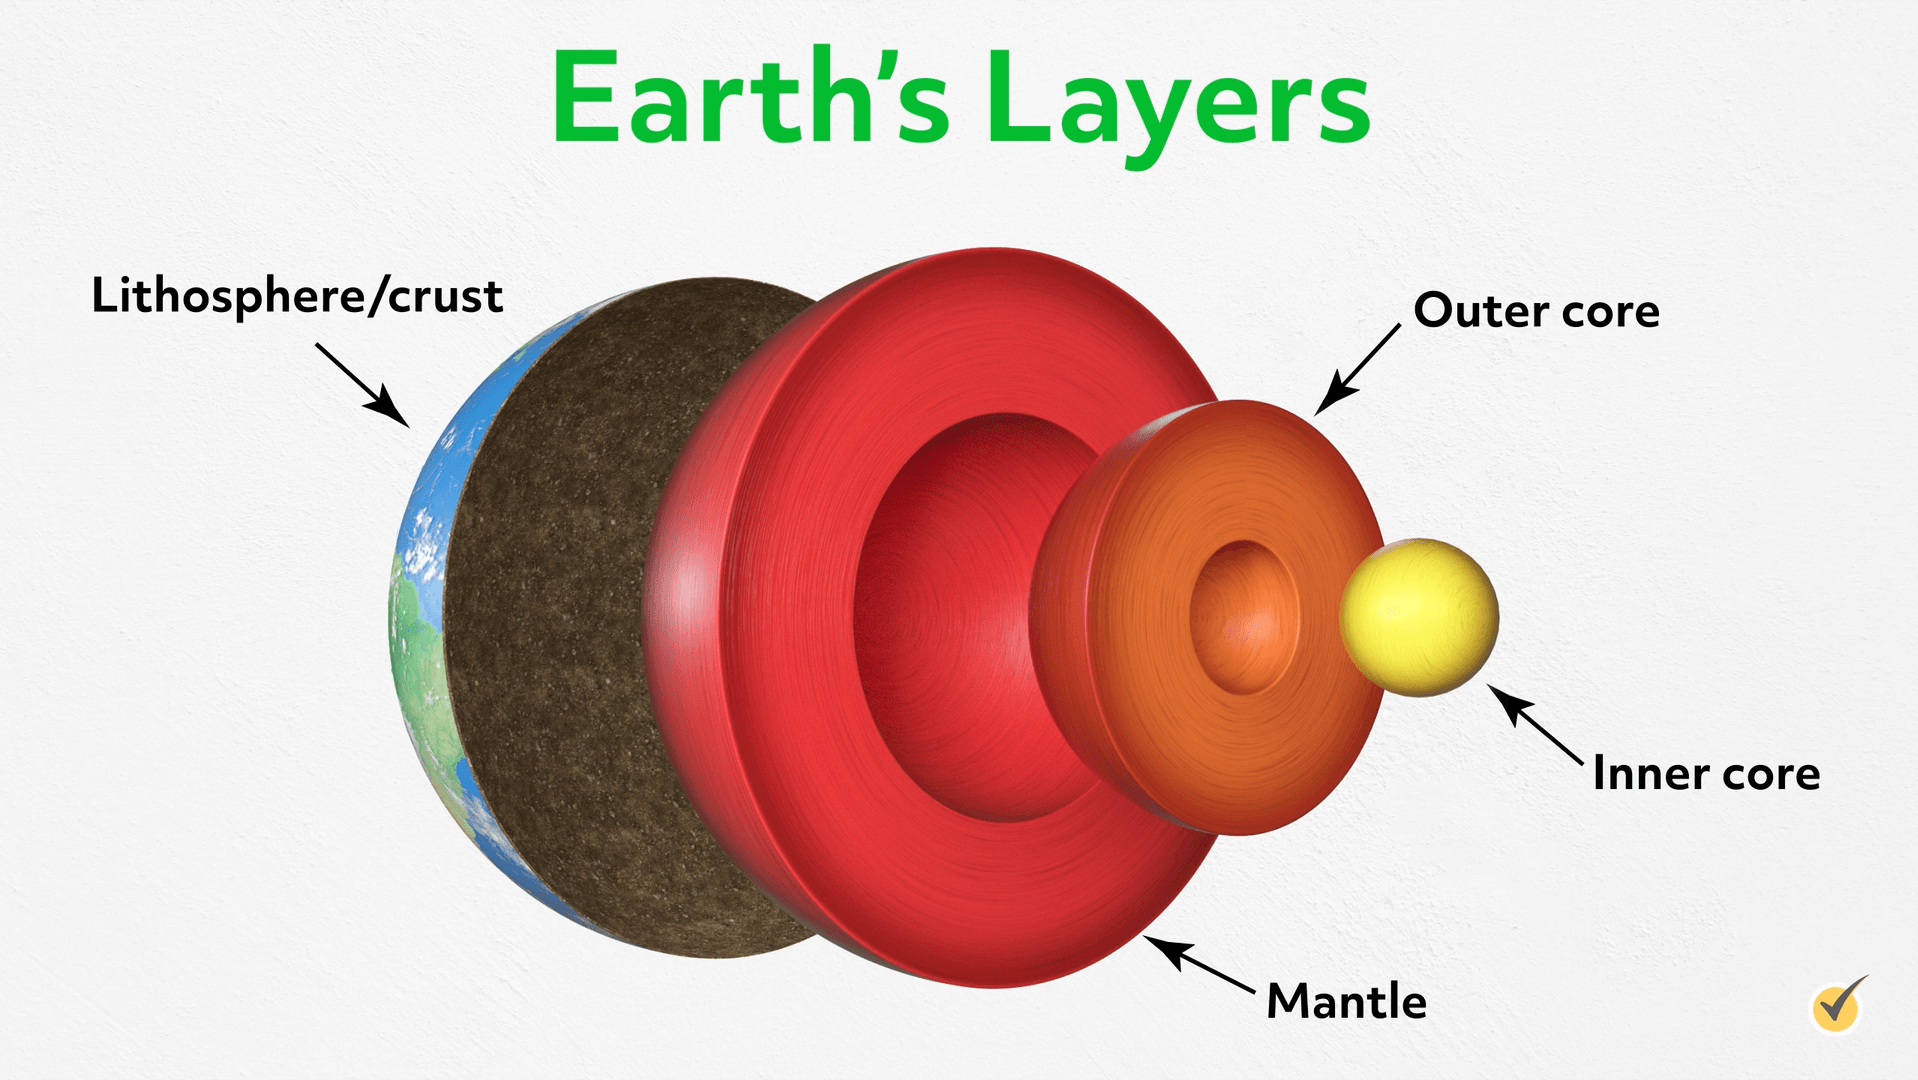 The earth's layers; lithosphere/crust, mantle, outer core, and inner core.